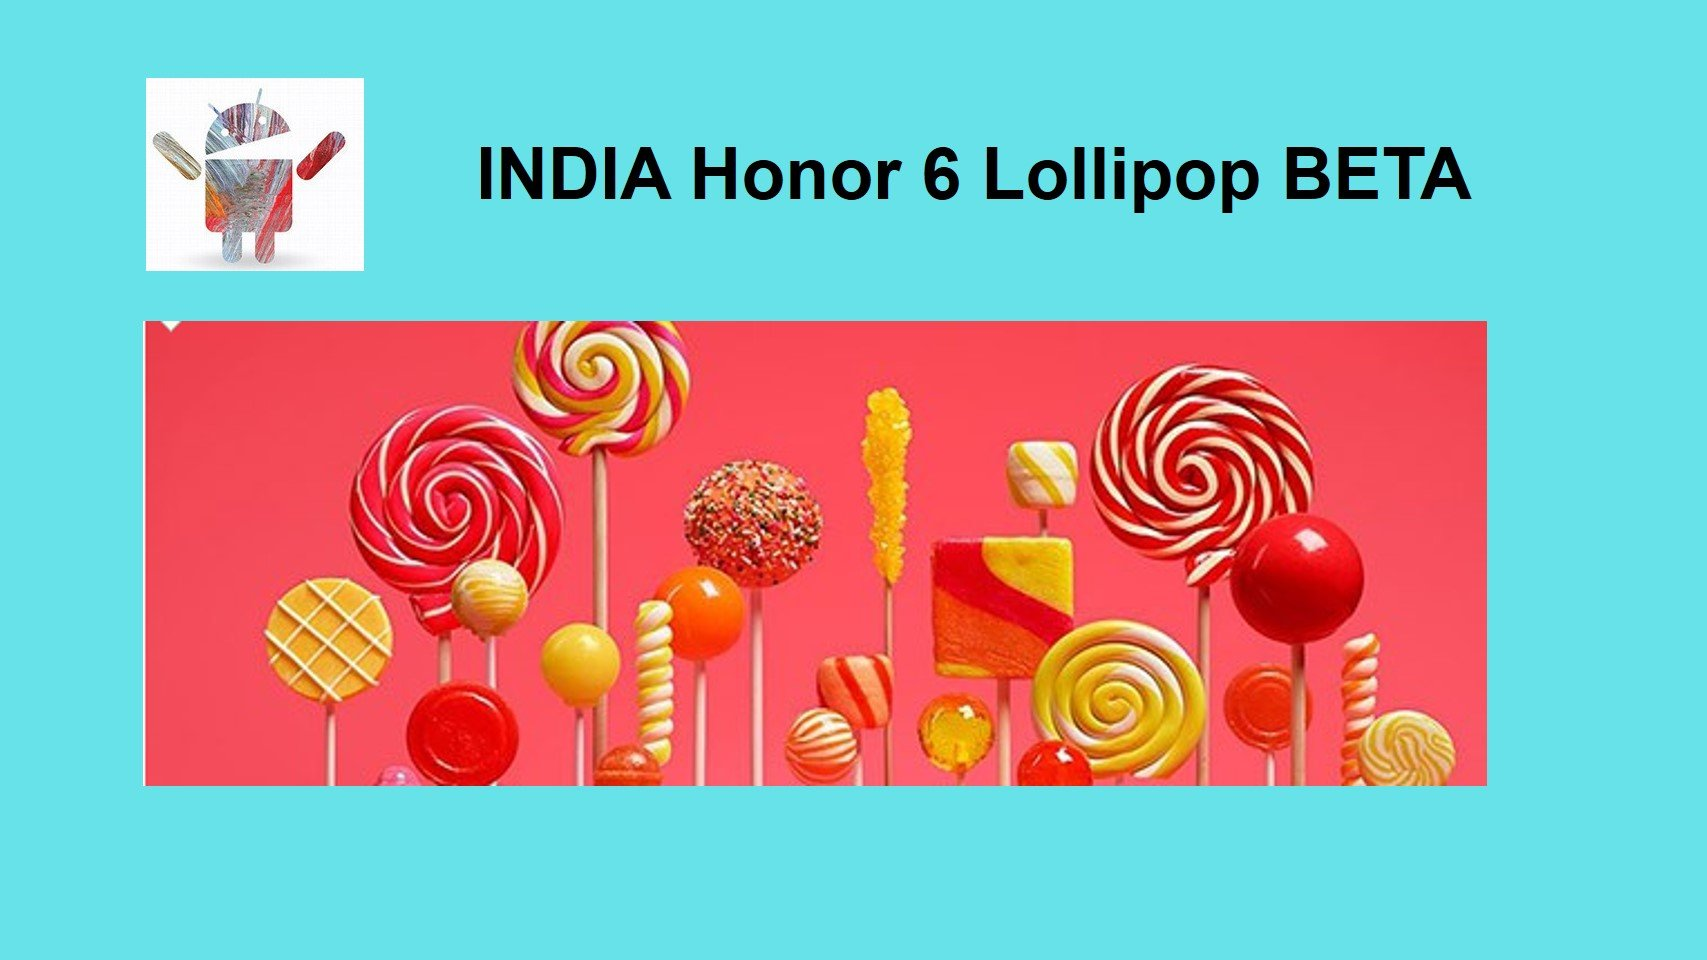 B506, B507, Honor 6 lollipop Beta